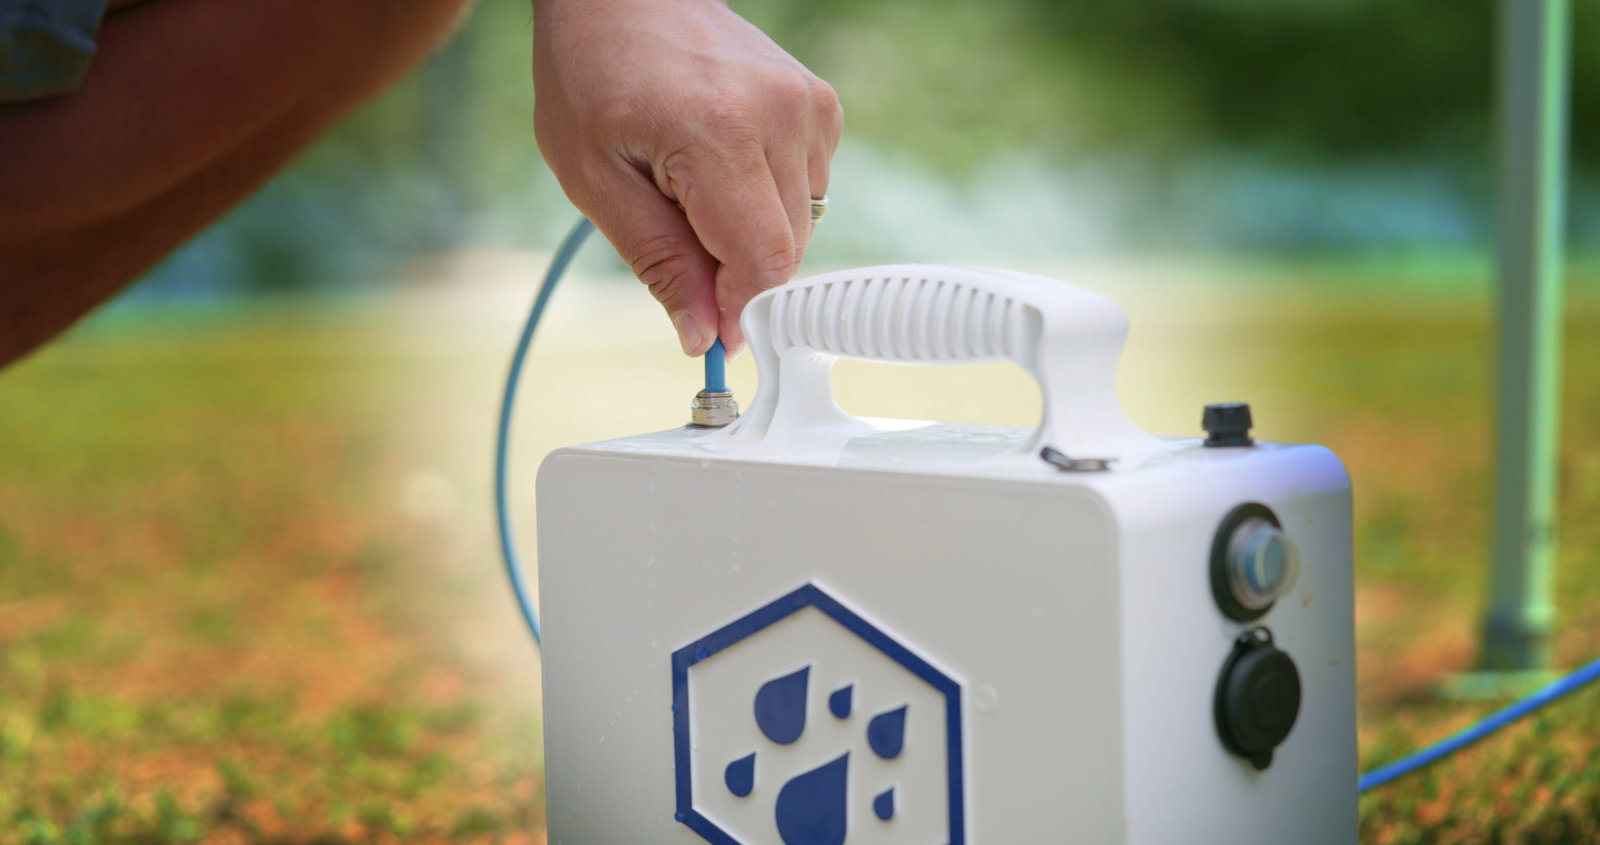 Attach the misting line to the output valve on top of the MISTER COOLER unit.